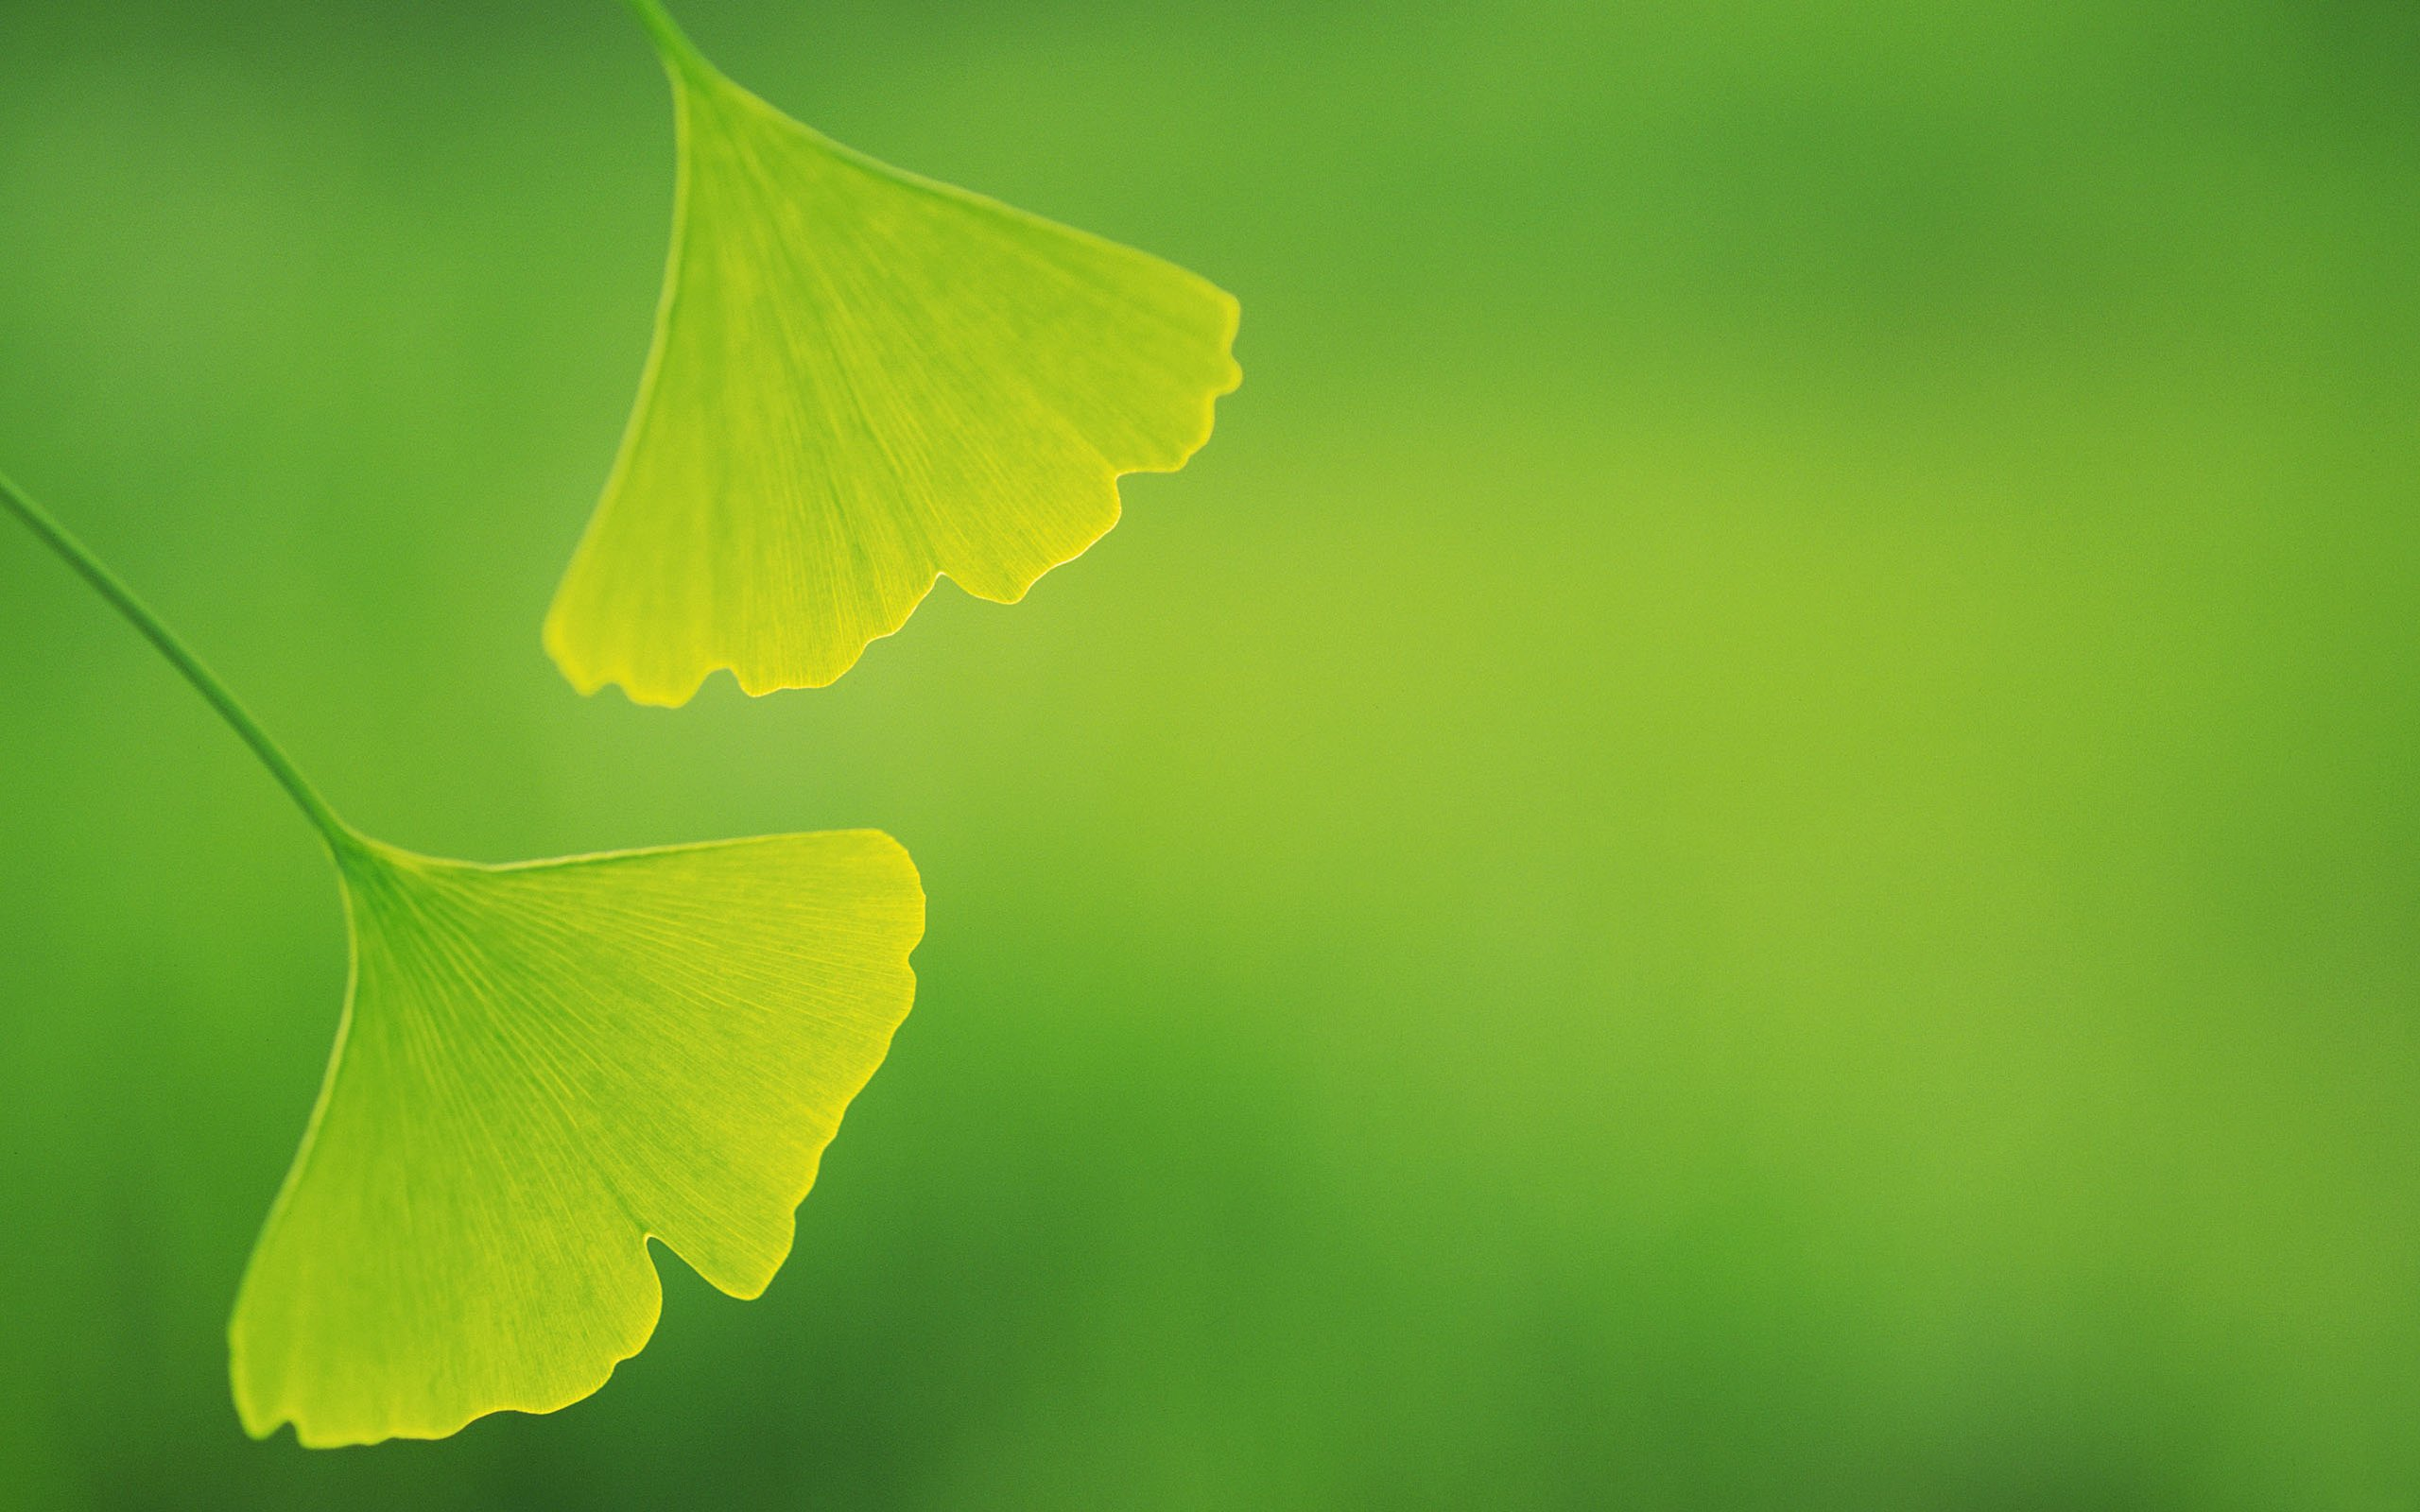 the wallpaper   Includes Two Green Leaves and Background Both Good 2560x1600